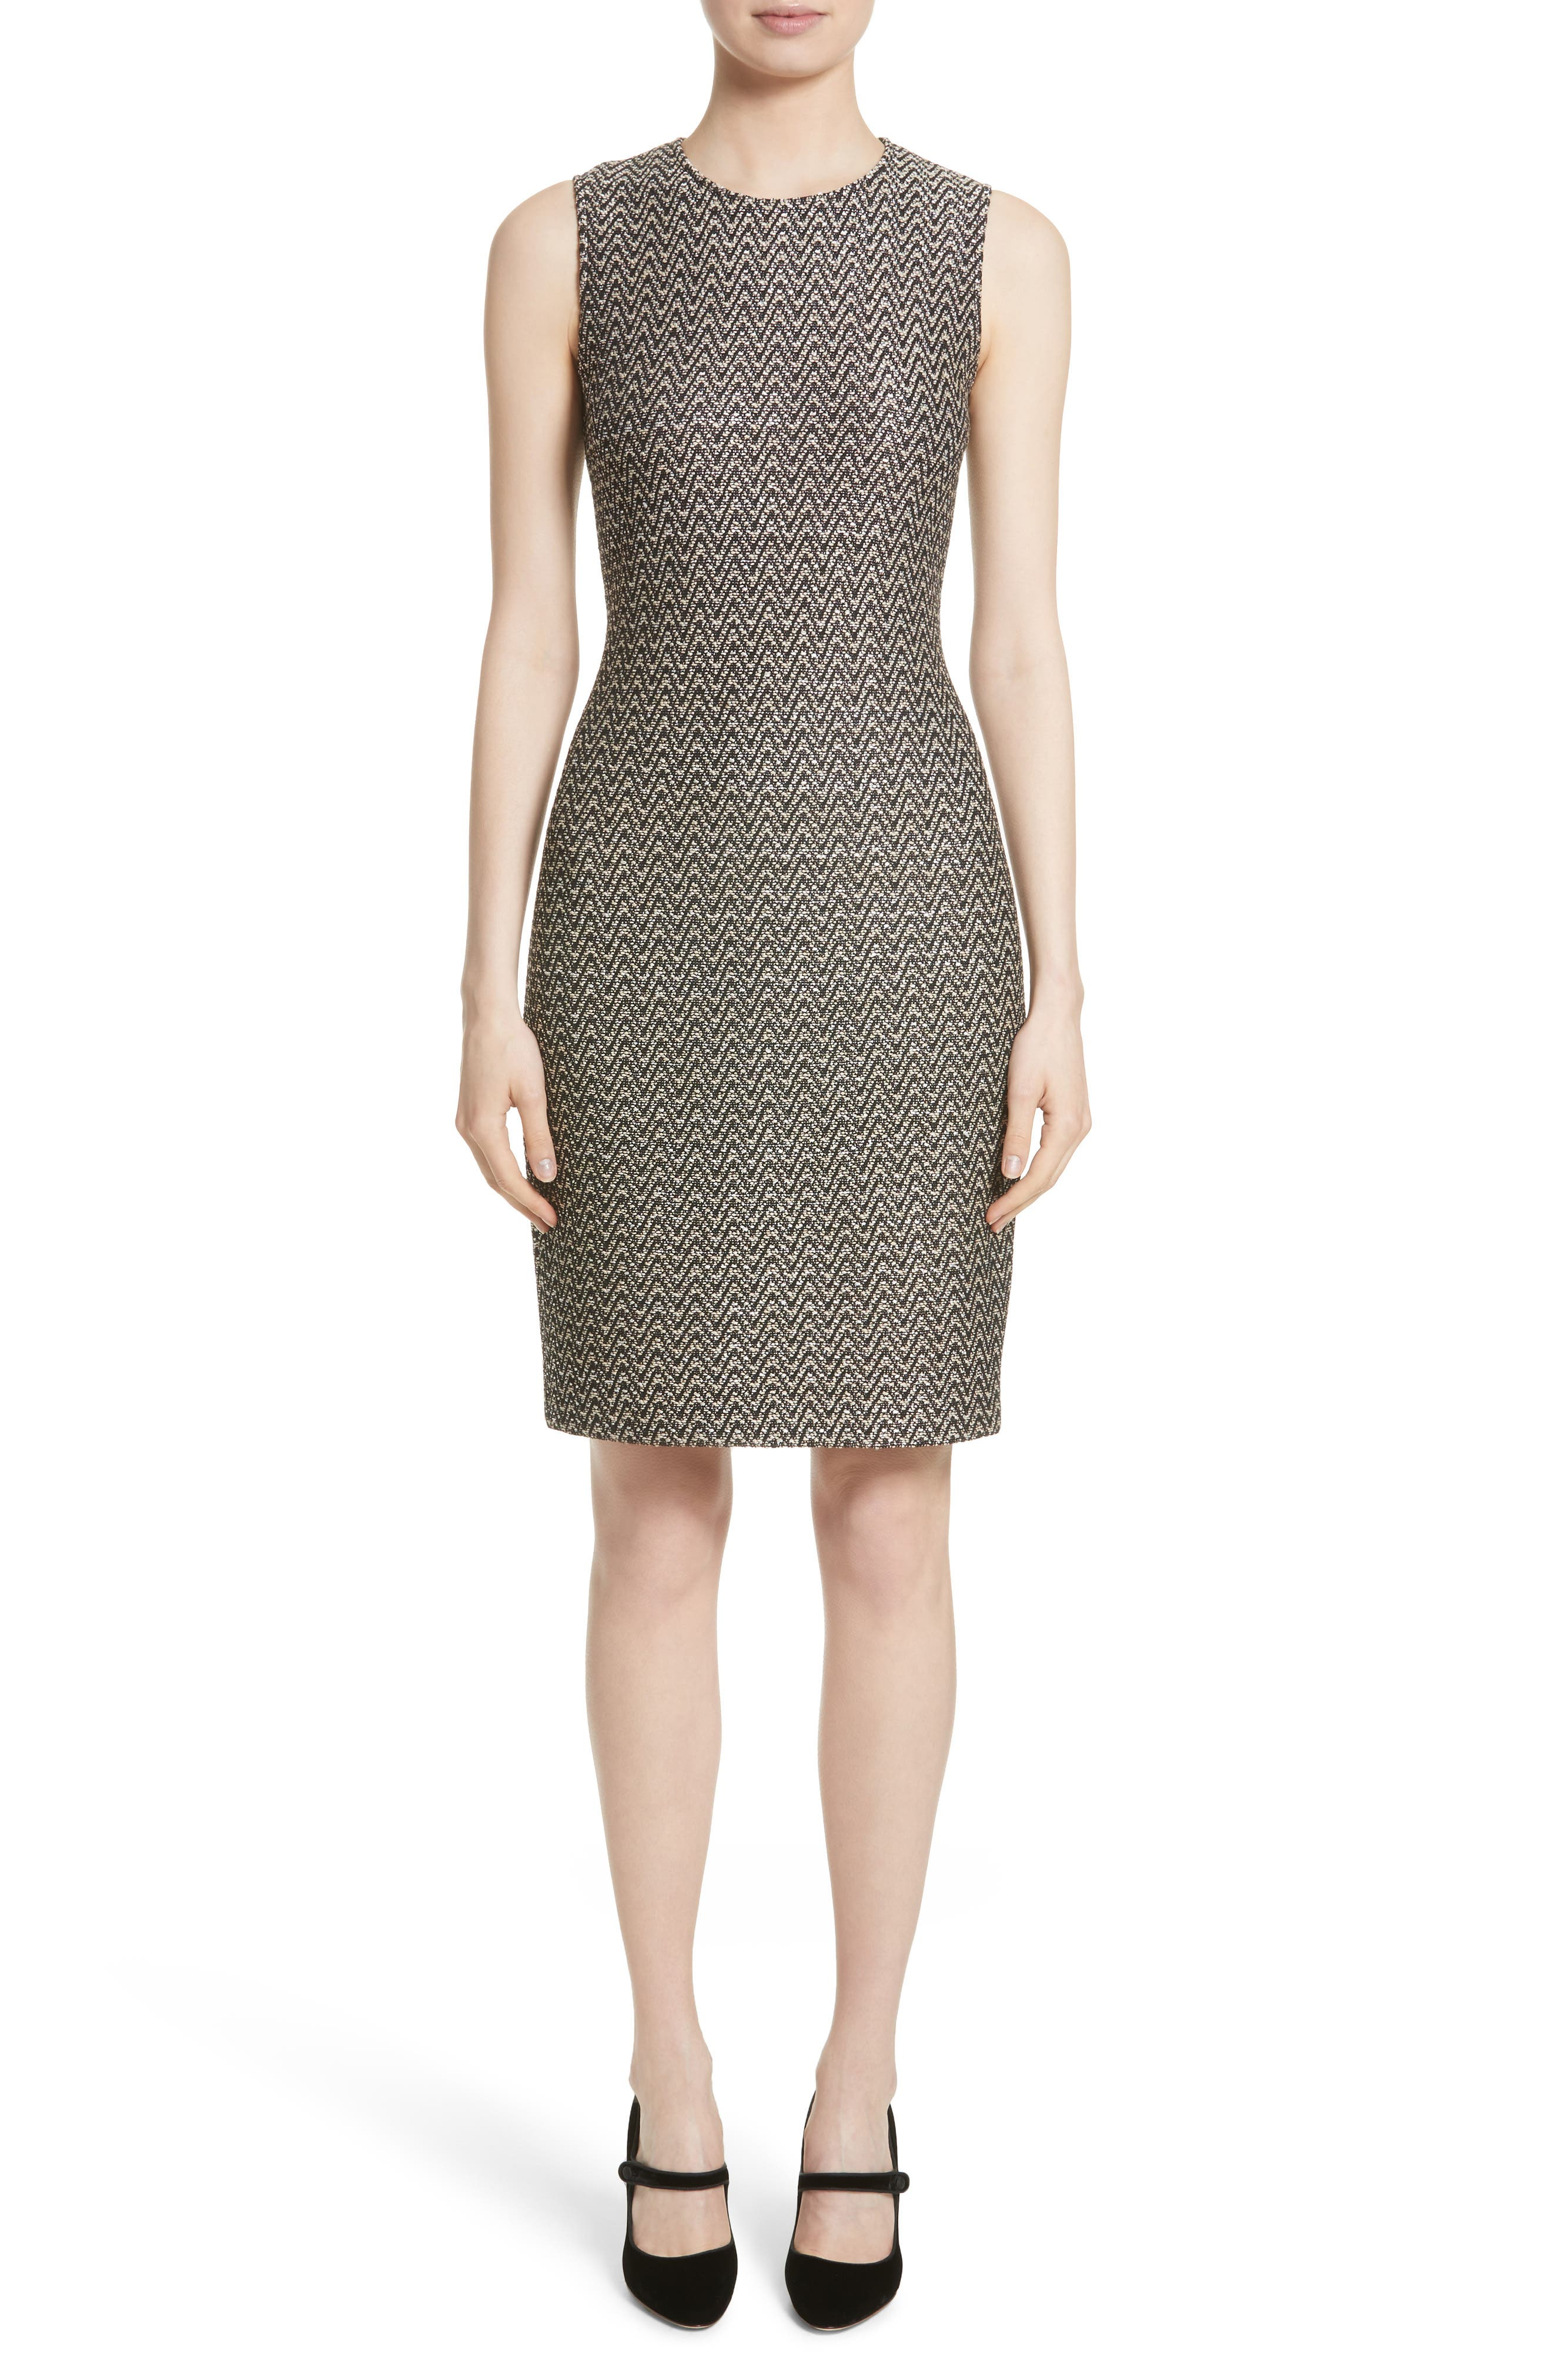 St. John Collection Aluna Speckled Chevron Tweed Knit Dress